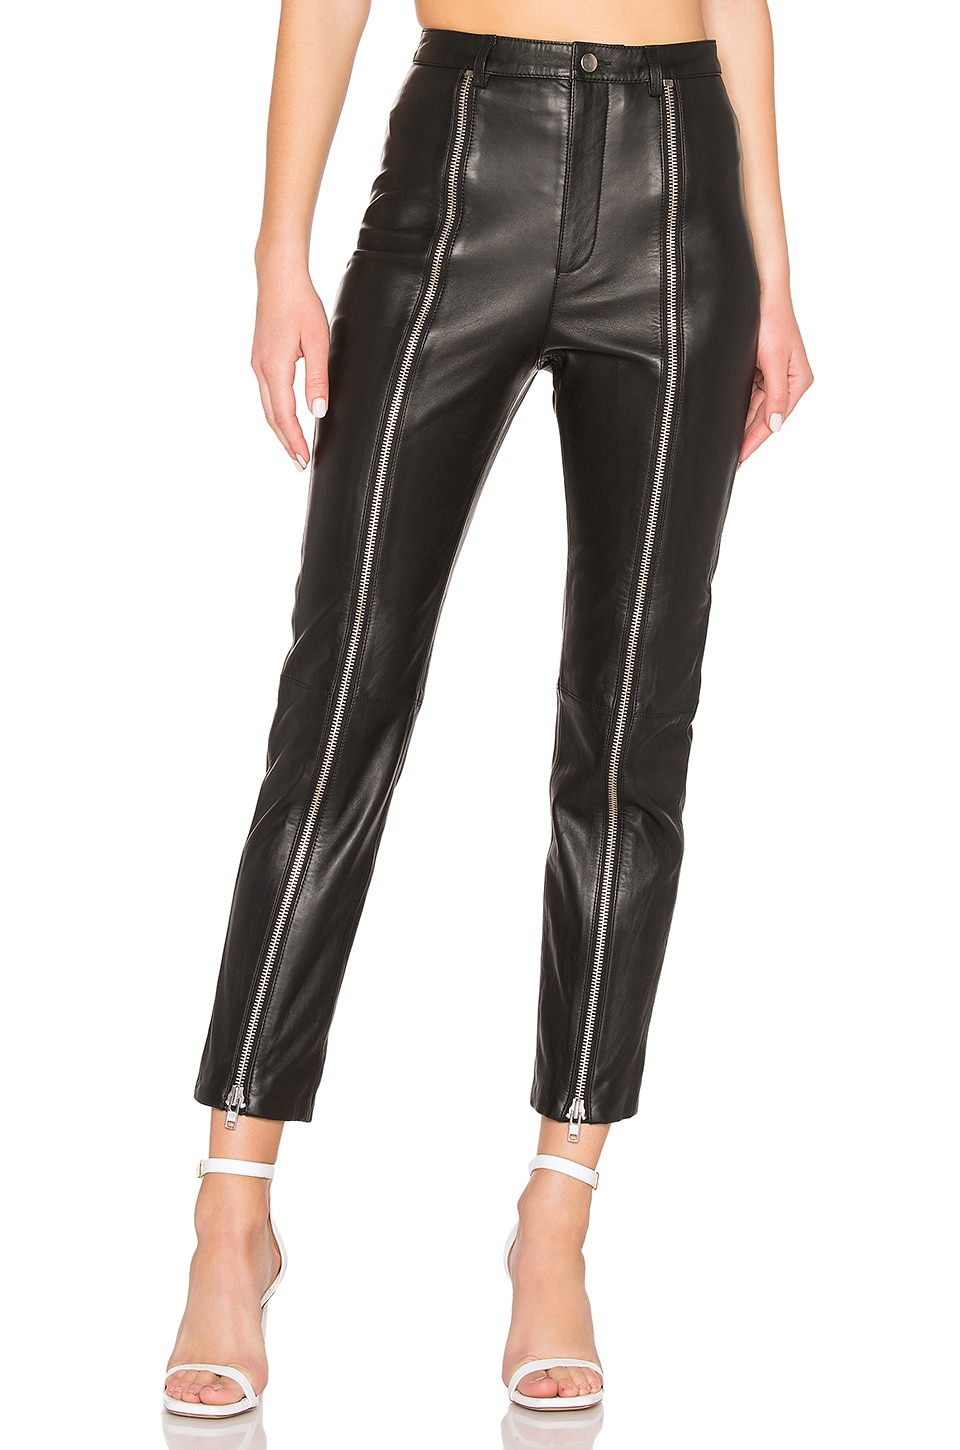 LPA Zip Up Pant in Black